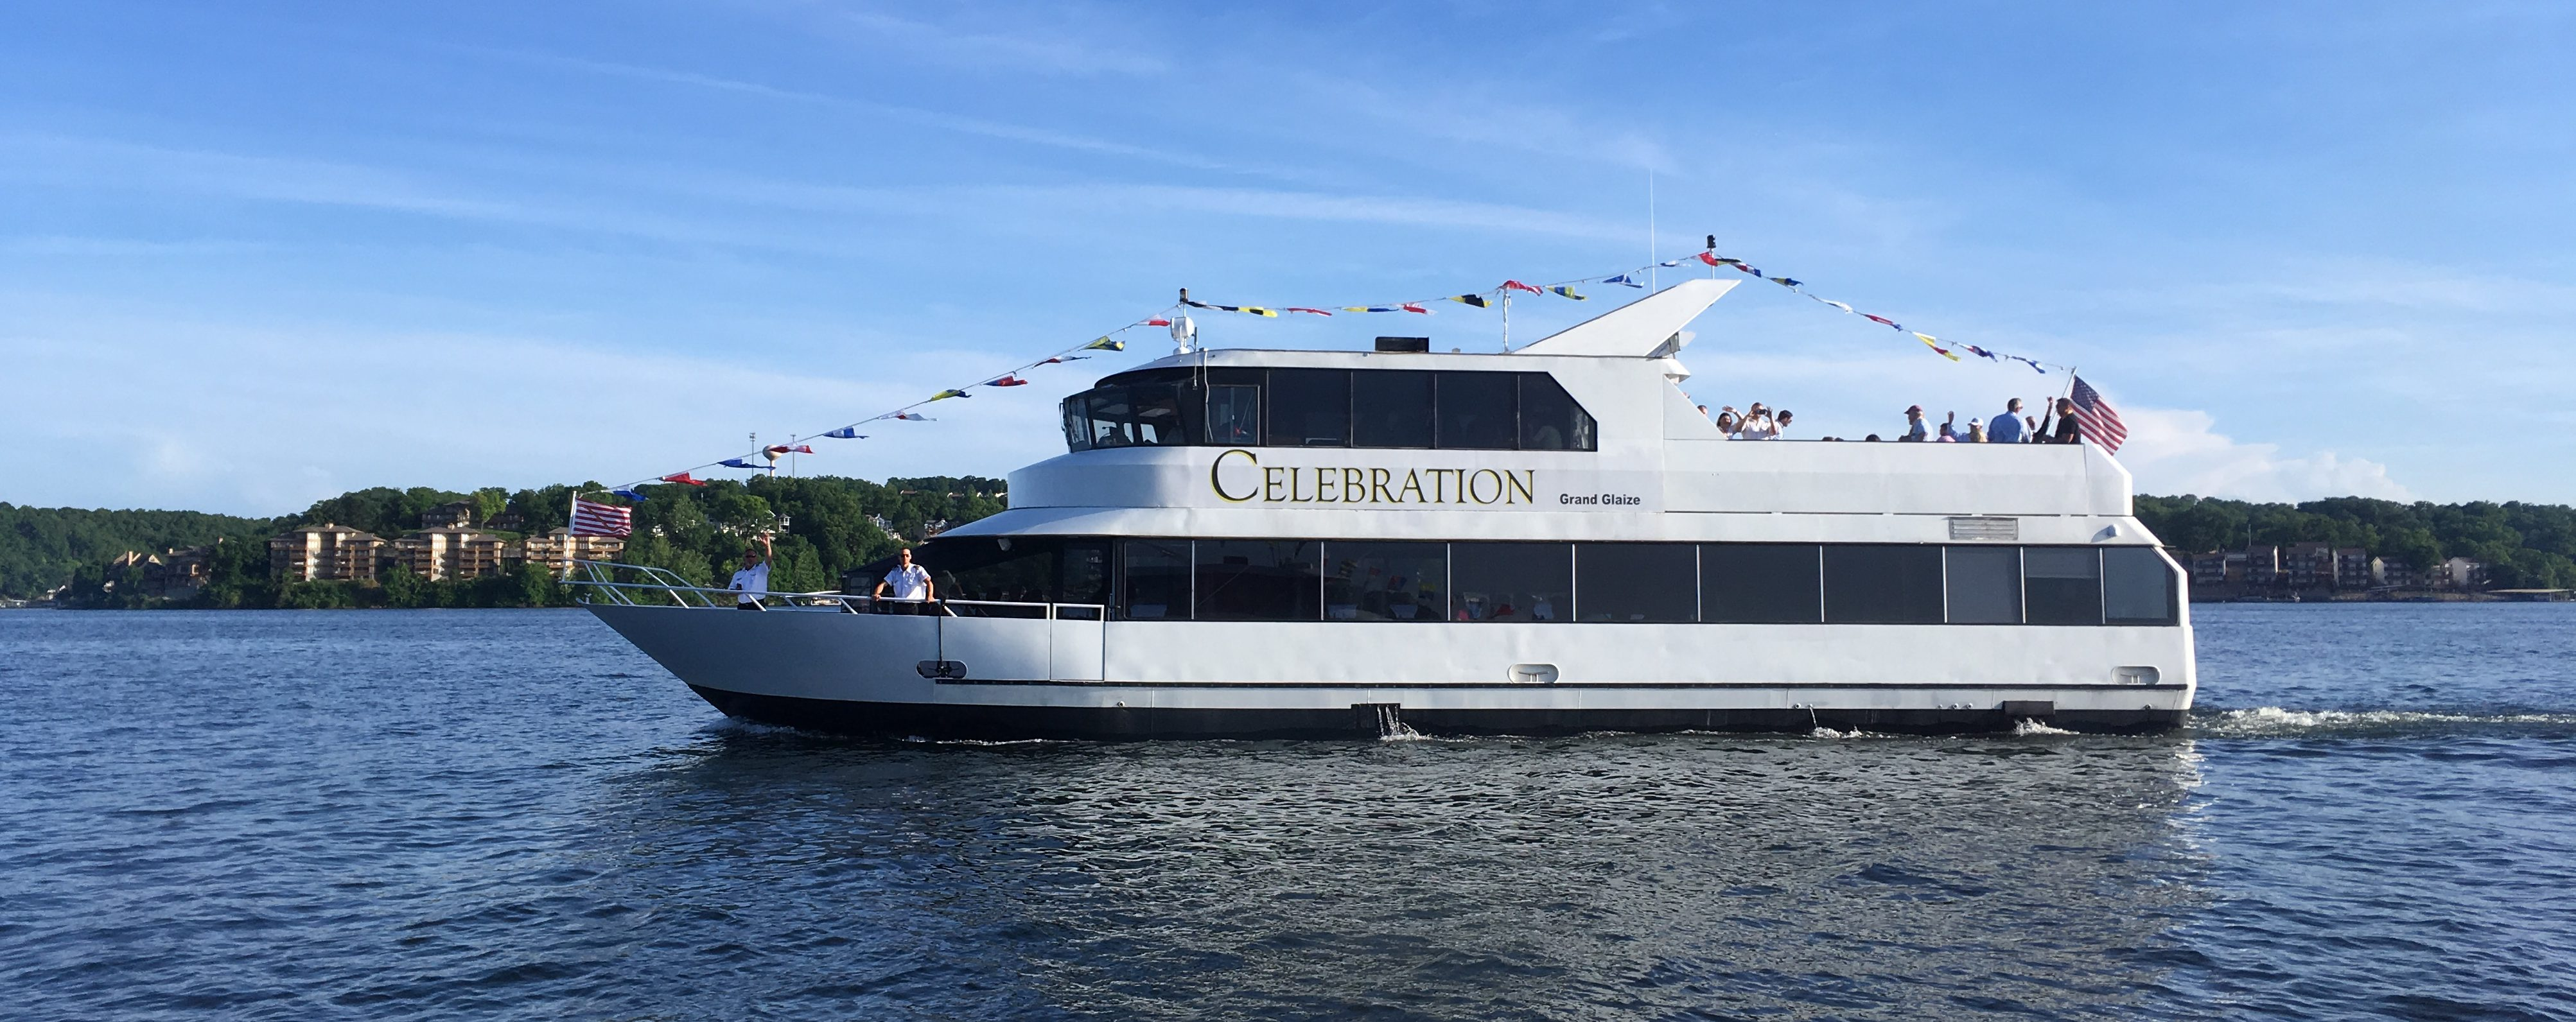 Celebration Cruise Ship